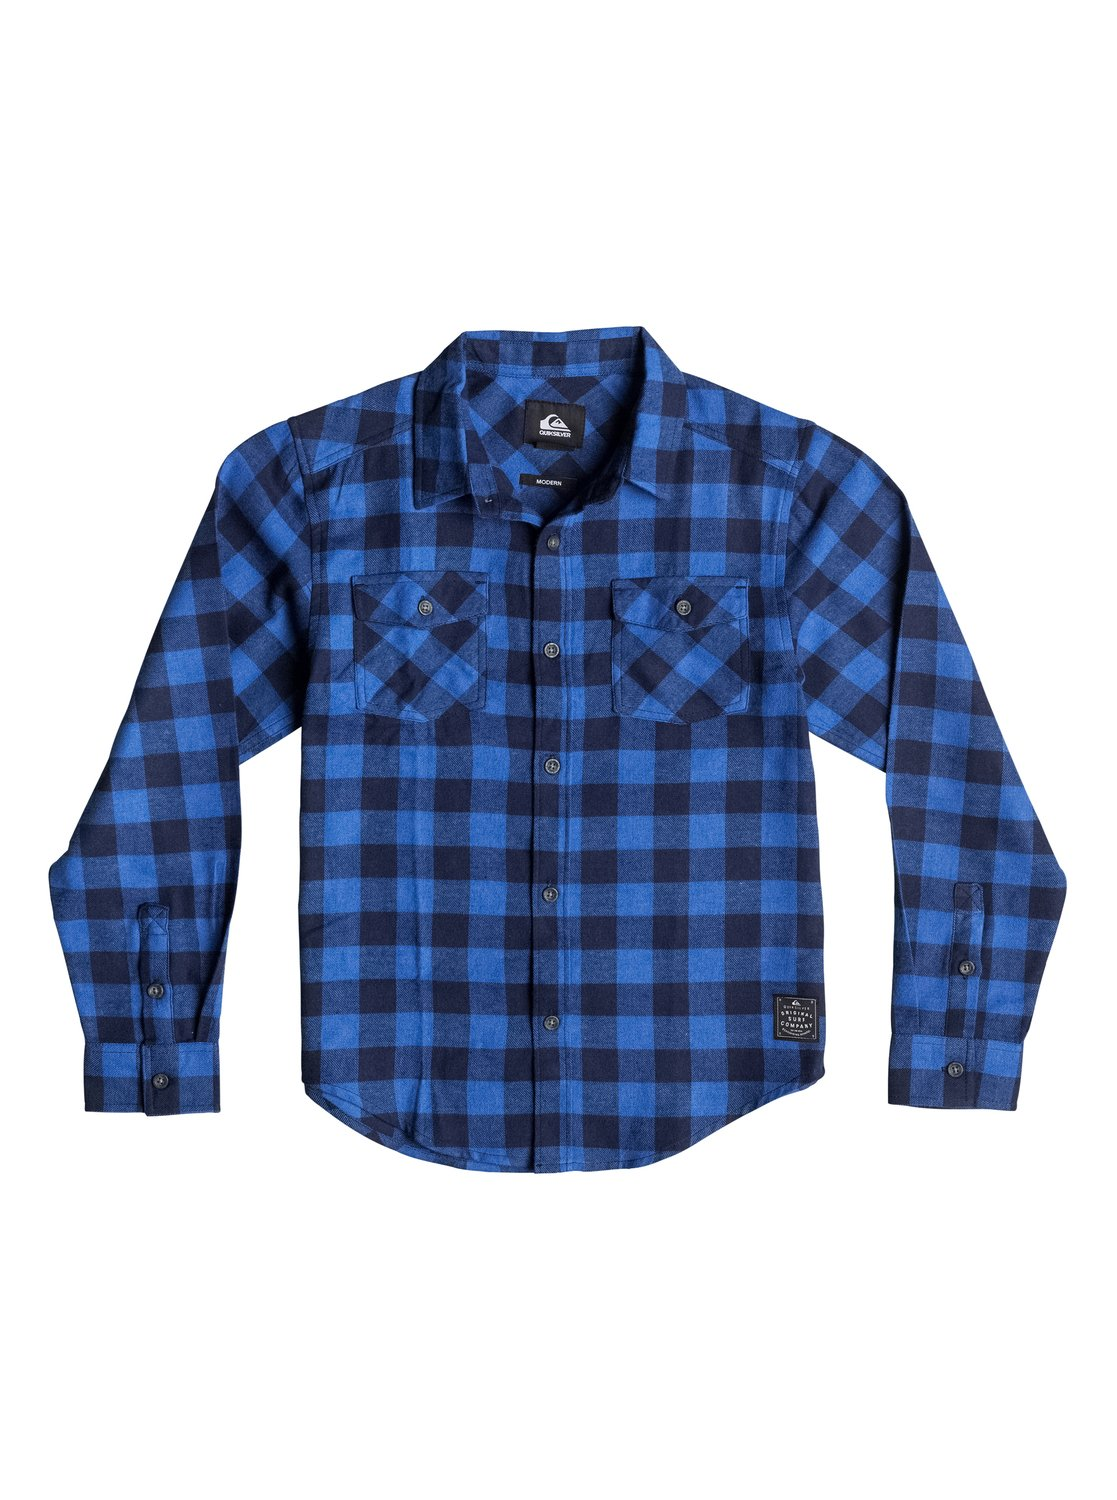 Flannel Shirts Boys - results from brands Arizona, Carter's, Wes and Willy, products like Alabama Crimson (Red) Tide Wes & Willy Youth Flannel Long Sleeve Shirt - Crimson, Boy's, Size: Youth S, Smith's American Big Boys' Plaid Check Huntsman Flannel Shirt, Navy, 8, Blue, Levi's Little Boys Plaid Cotton Flannel Shirt - Blue/Grey 5.